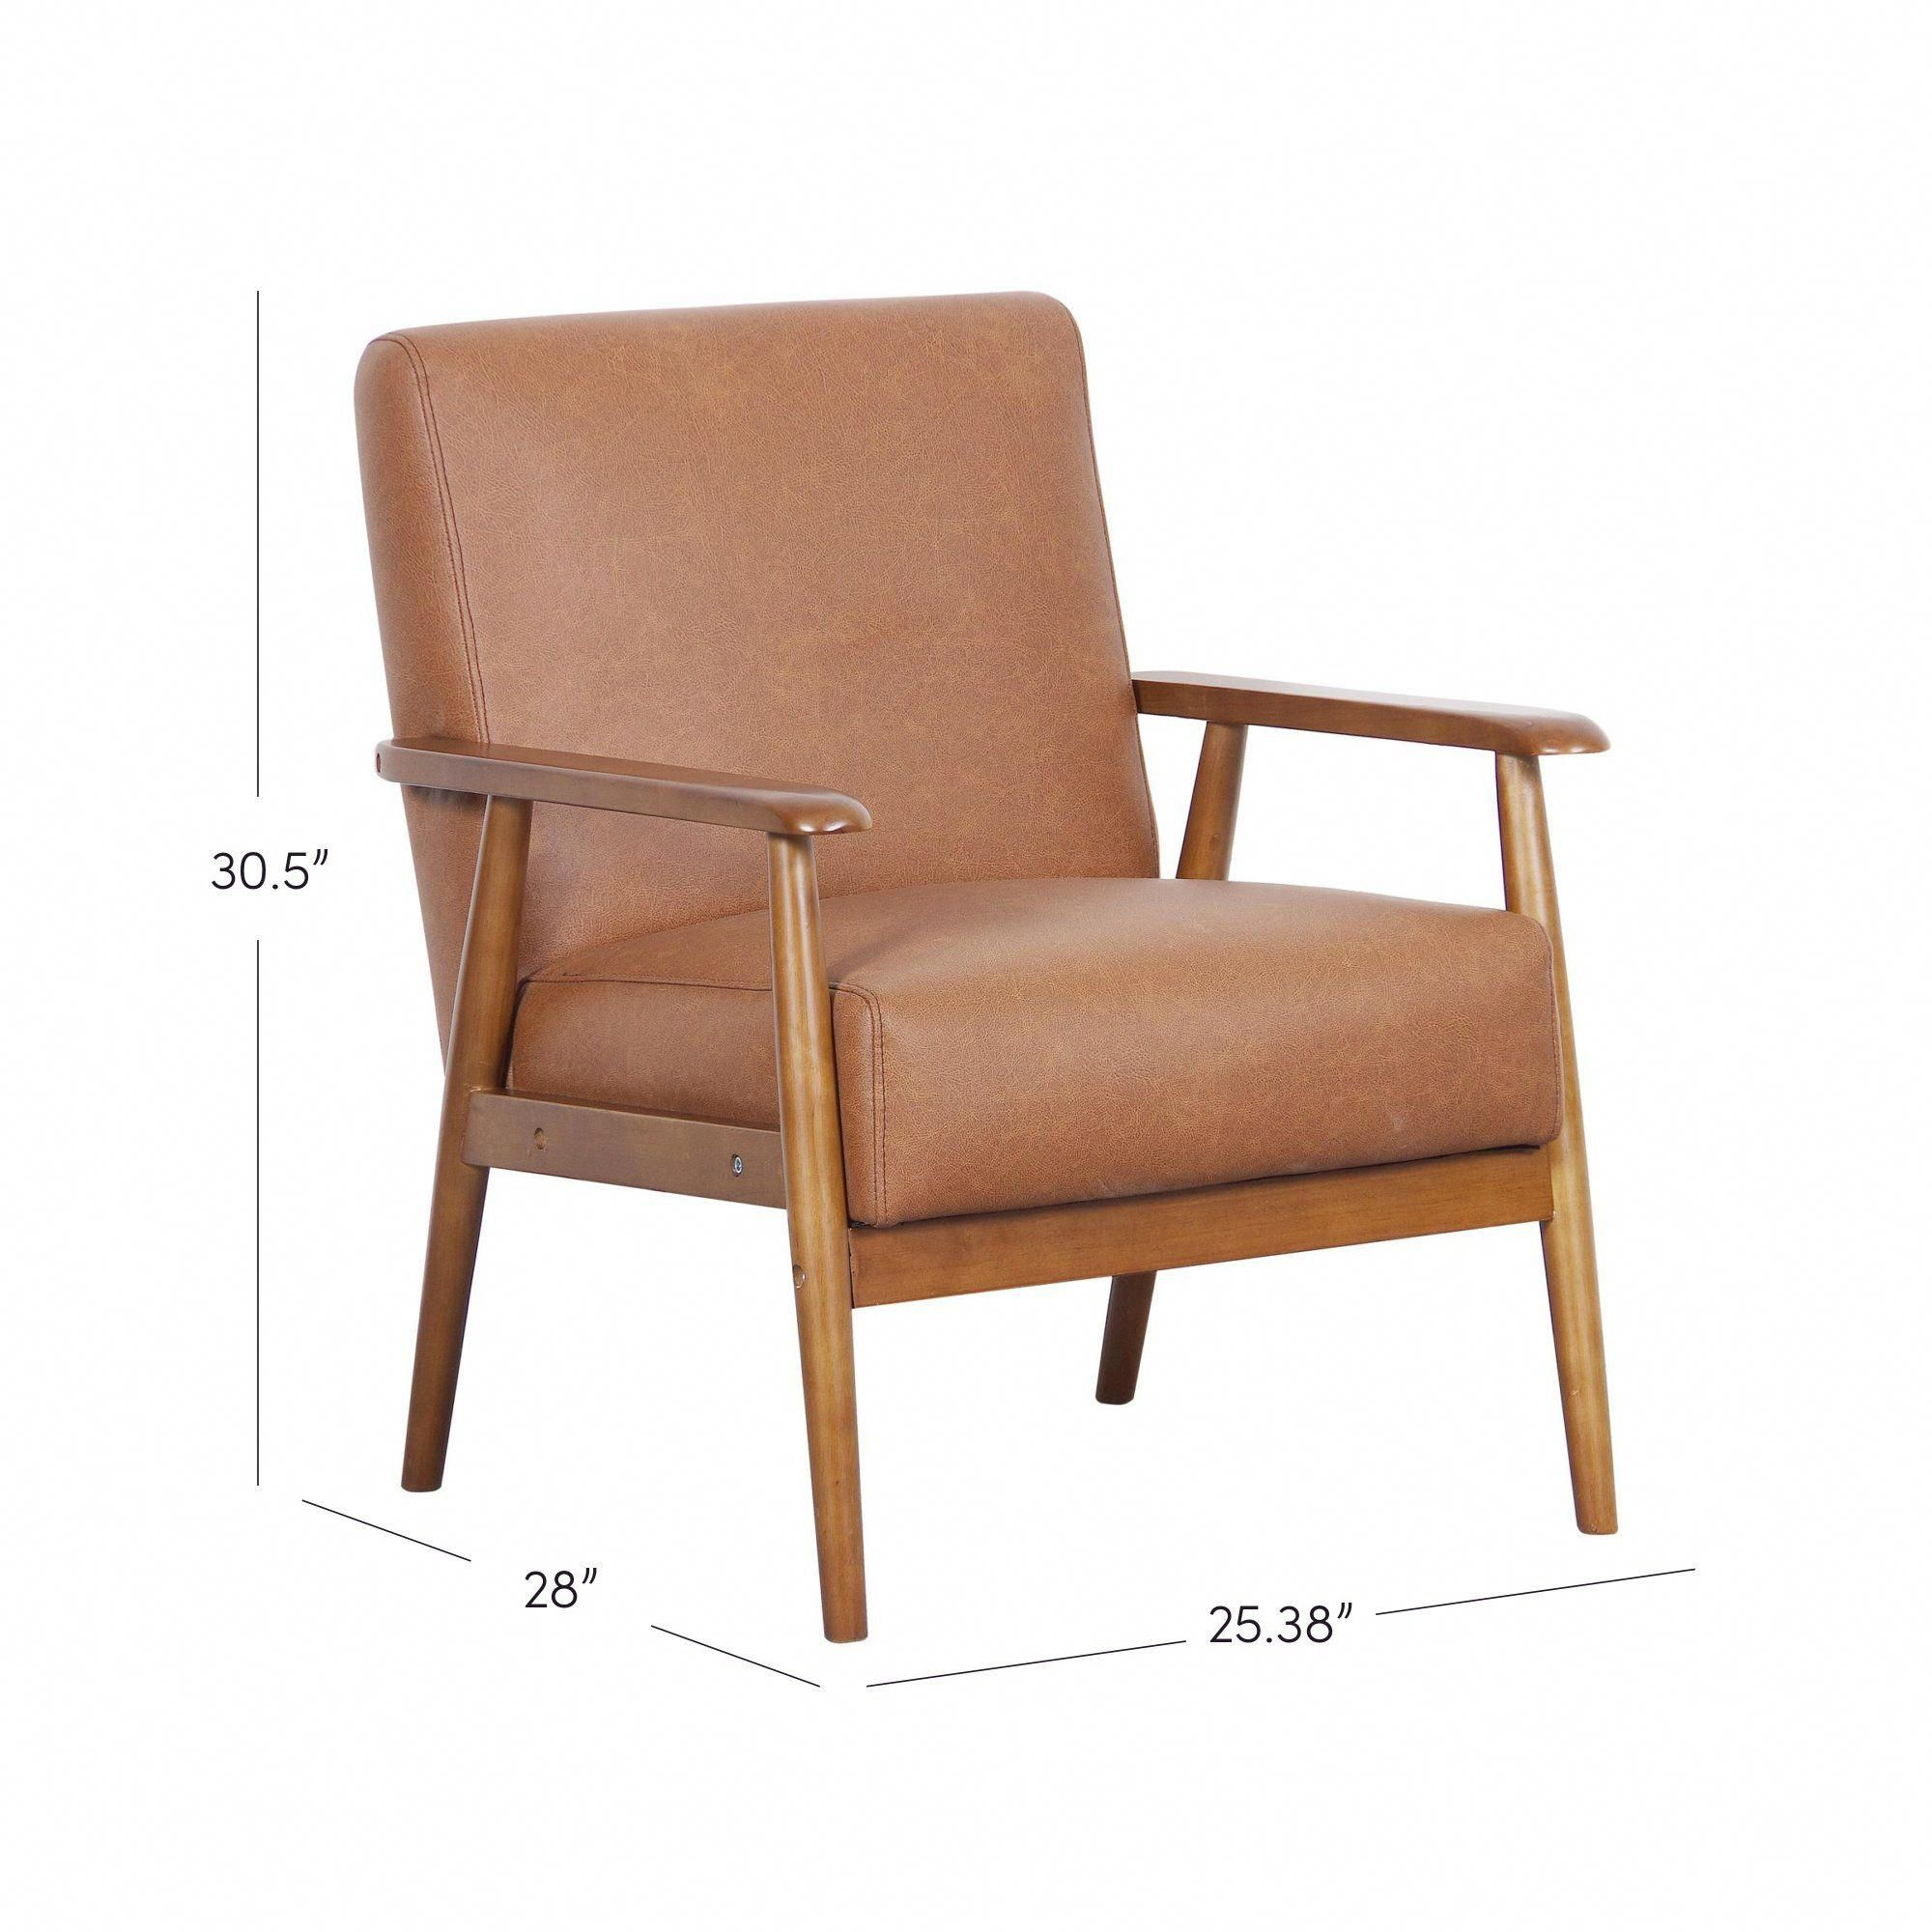 Colorfulchairs | Faux Leather Chair, Armchair, Leather Chair With Regard To Jarin Faux Leather Armchairs (View 4 of 15)